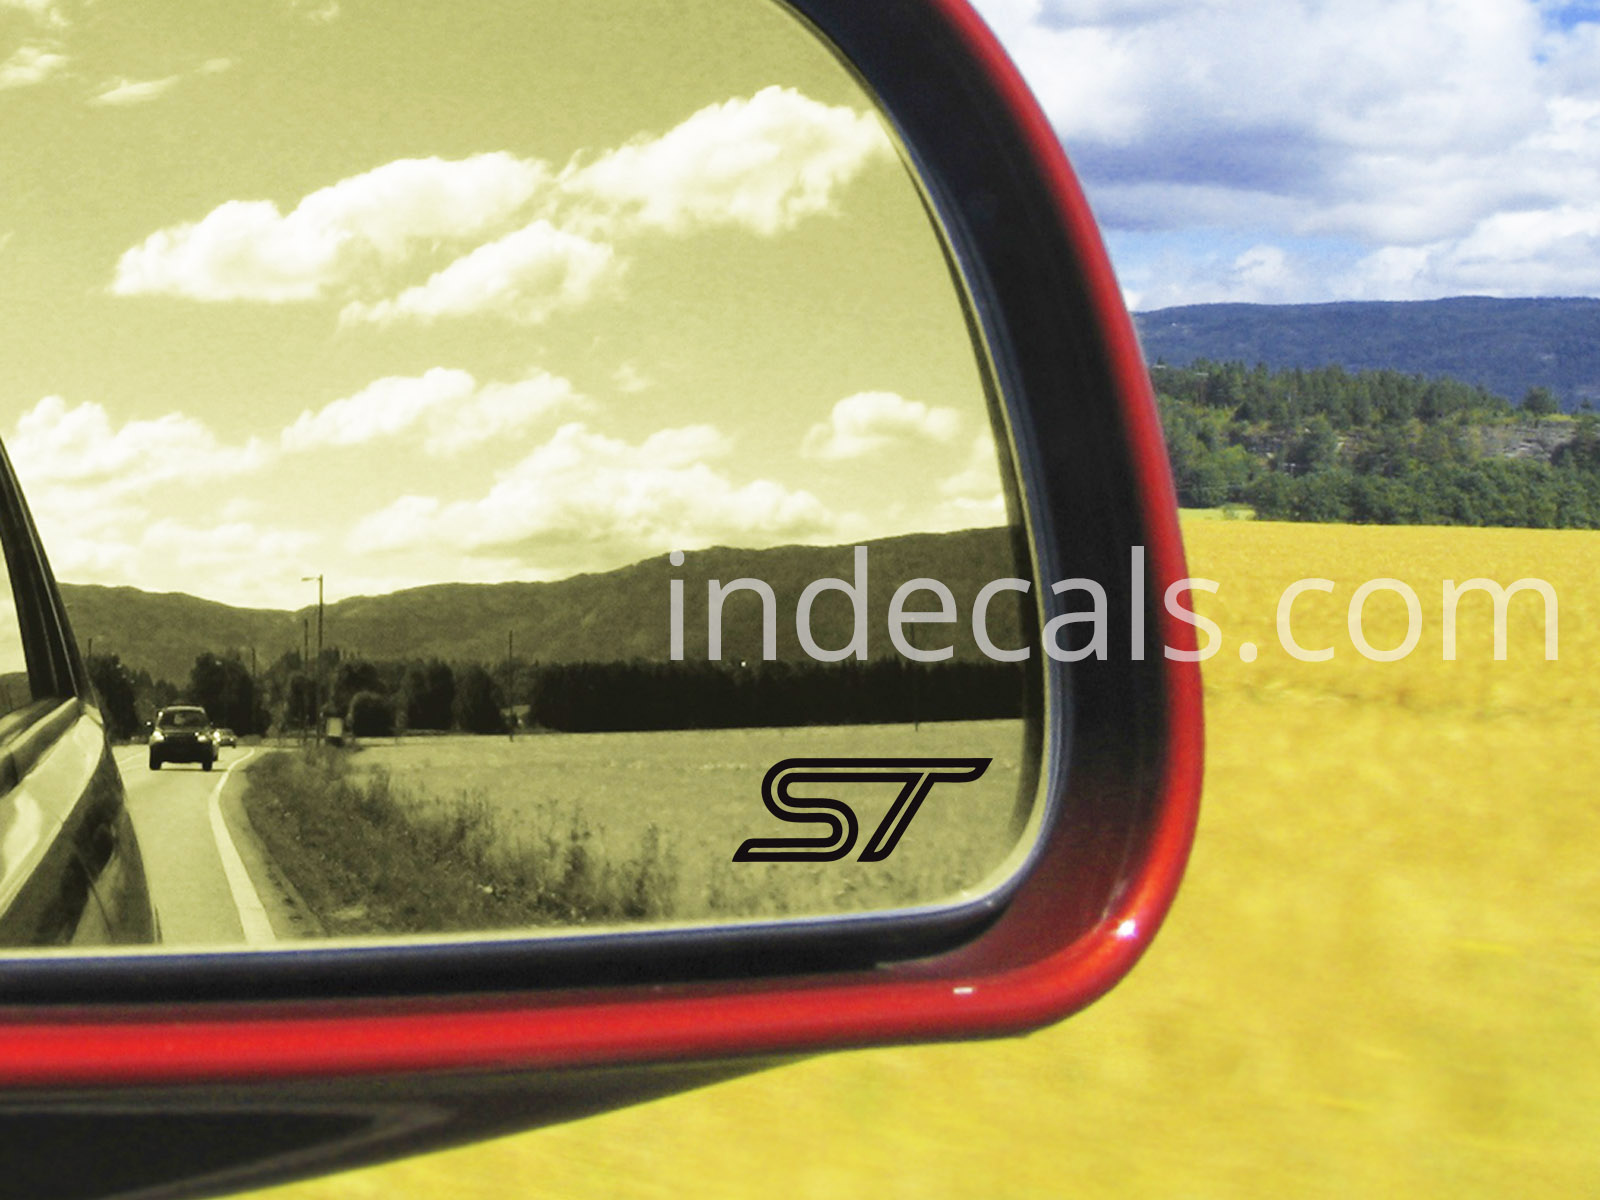 3 x Ford ST Stickers for Mirror Glass - Black